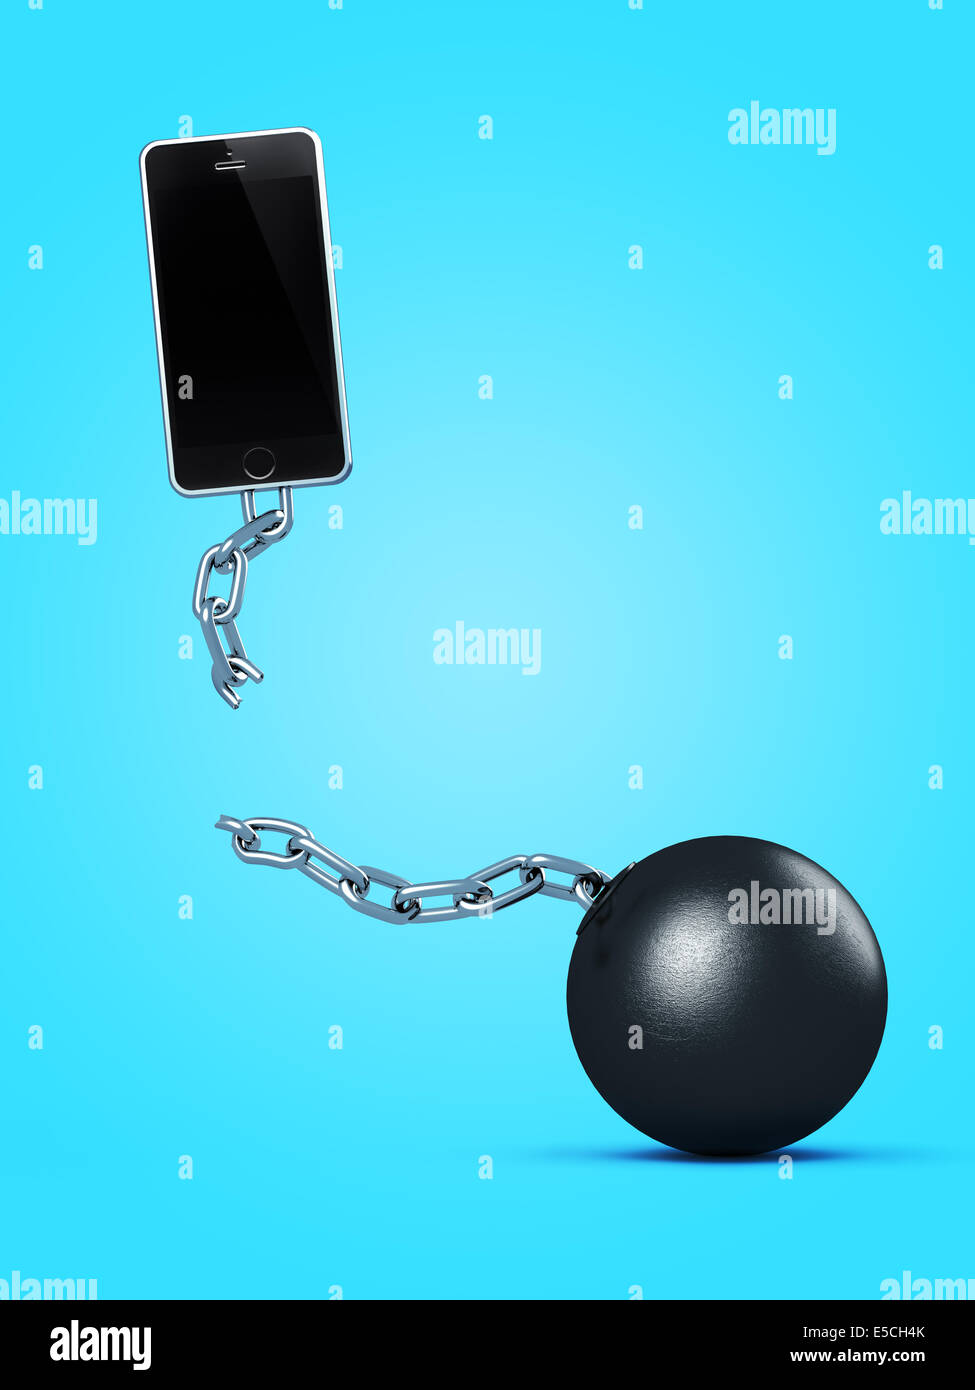 Phone breaking away from ball and chain, breaking a contract, contract-free service, conceptual illustration on - Stock Image